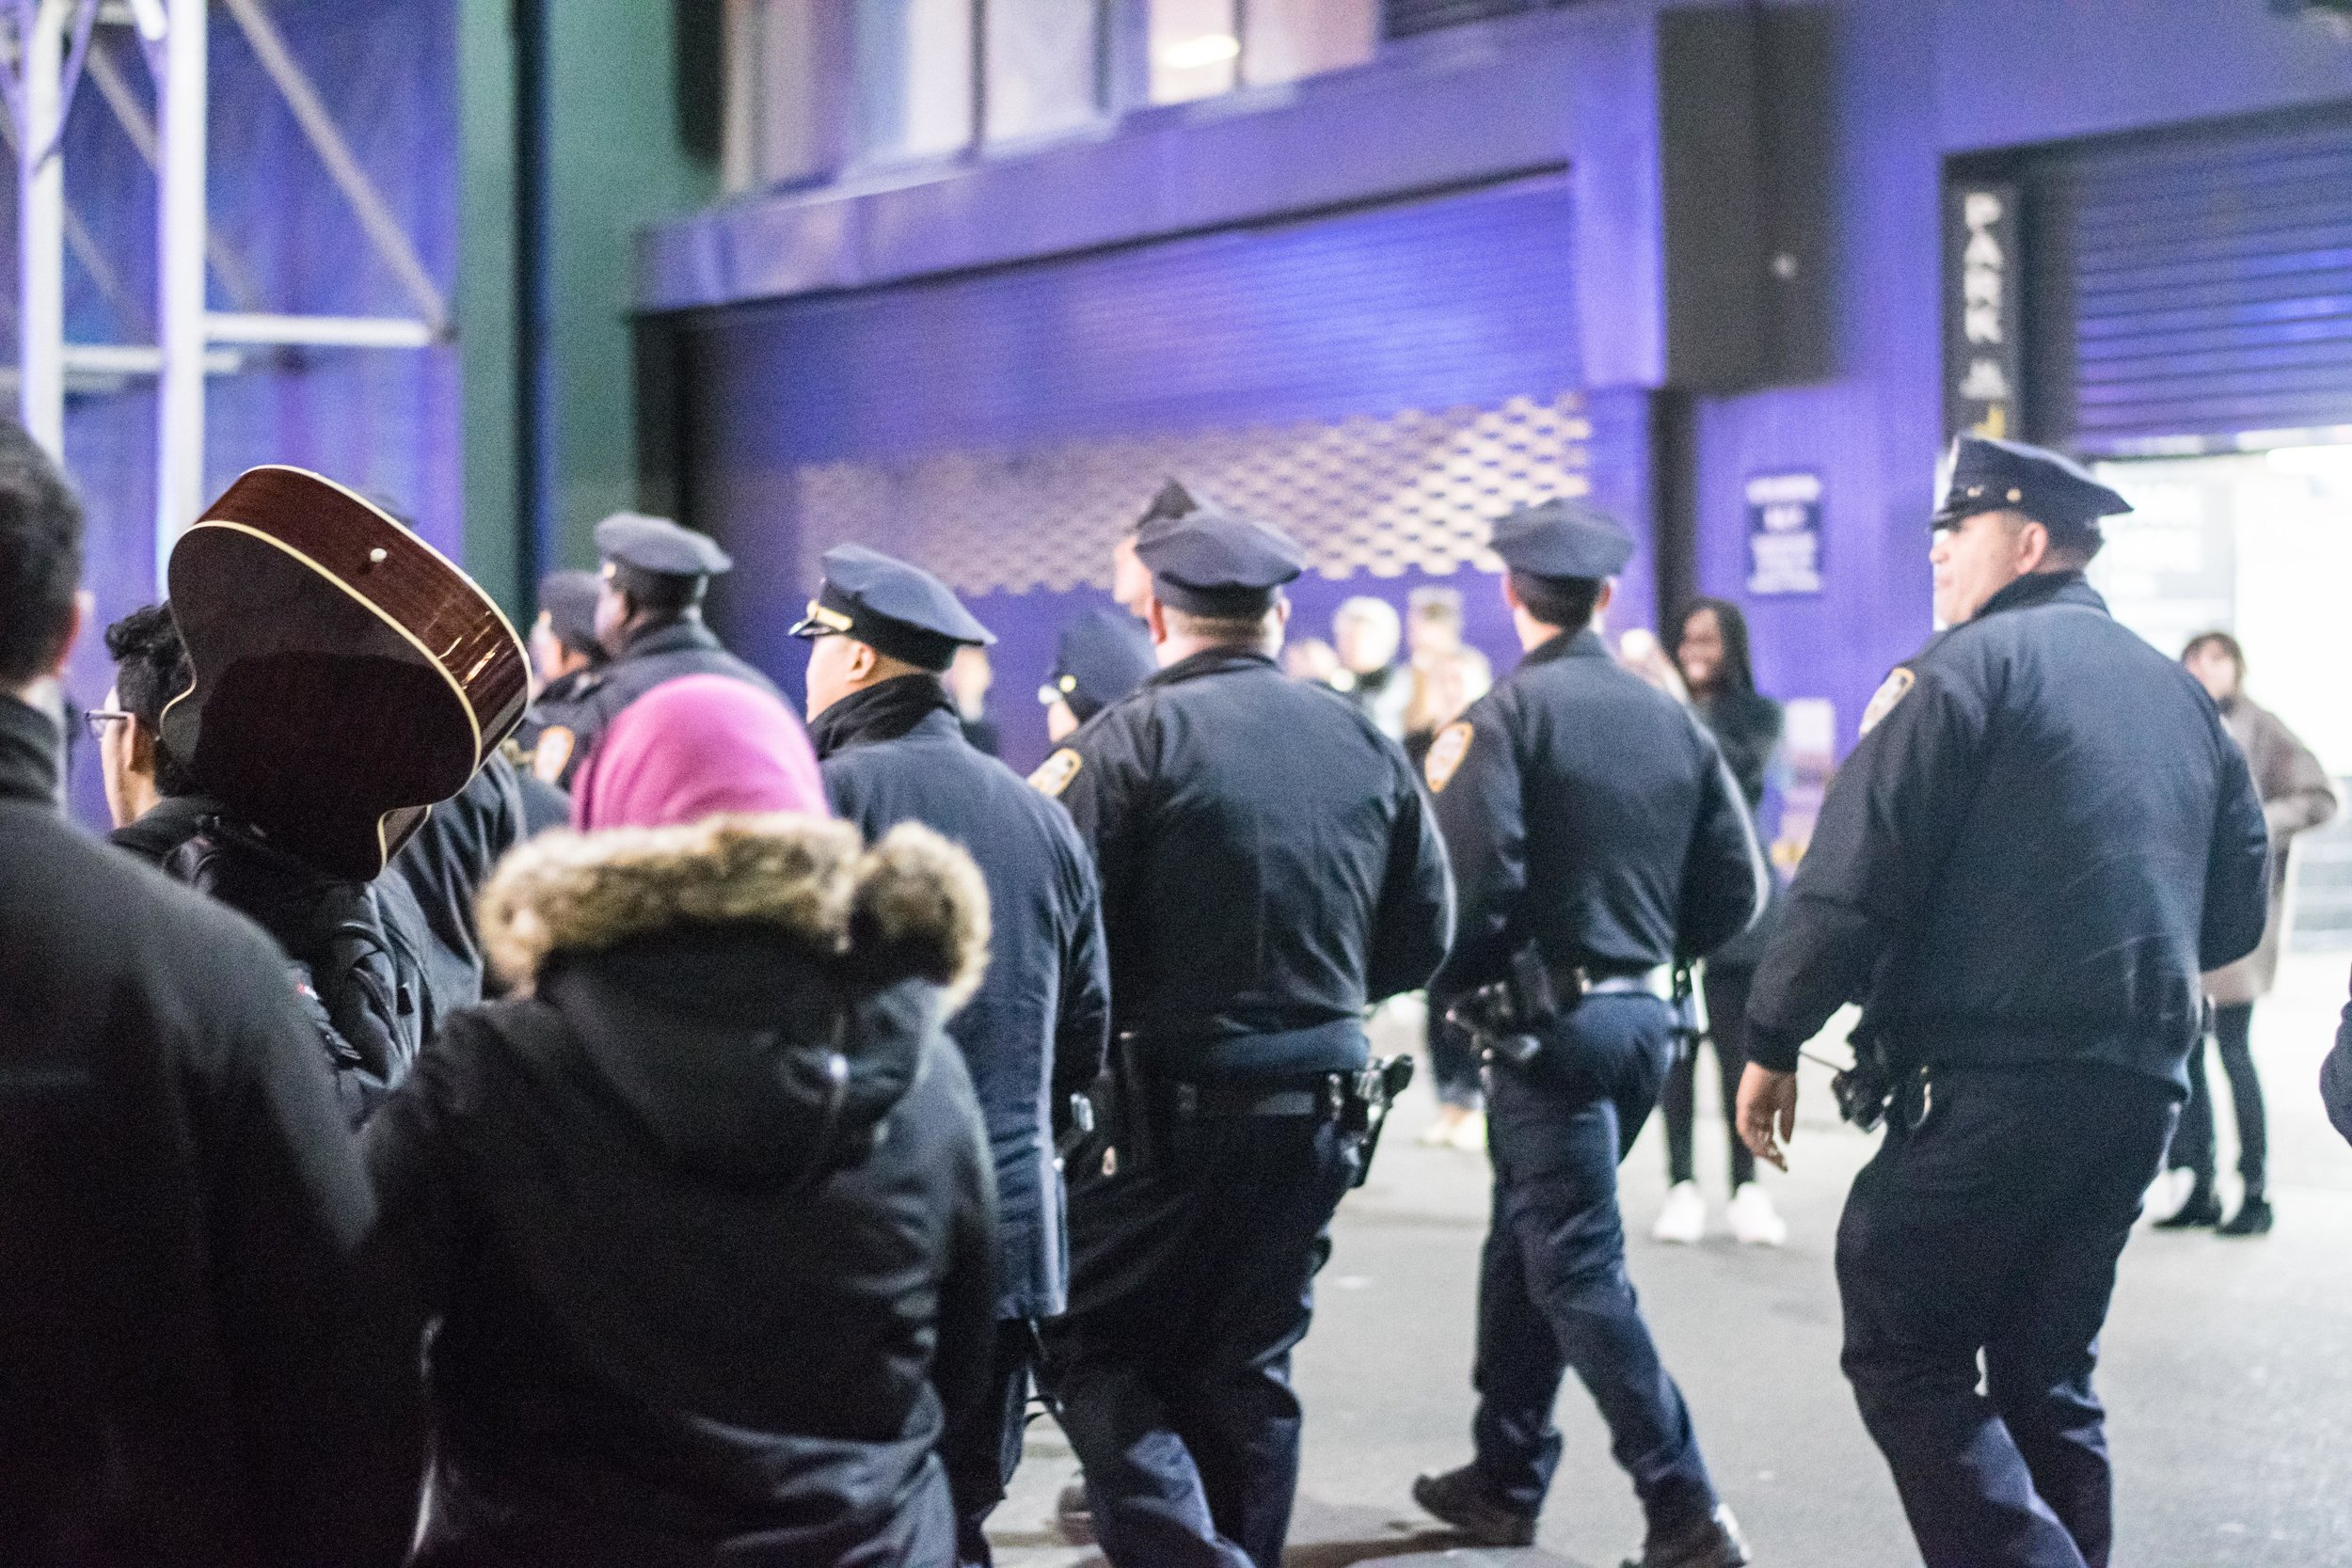 2016-NYC-New-York-Trump-Protest-March-Police-Crowd-Control-NYPD-Officers-Law-Enforcement-Guitar